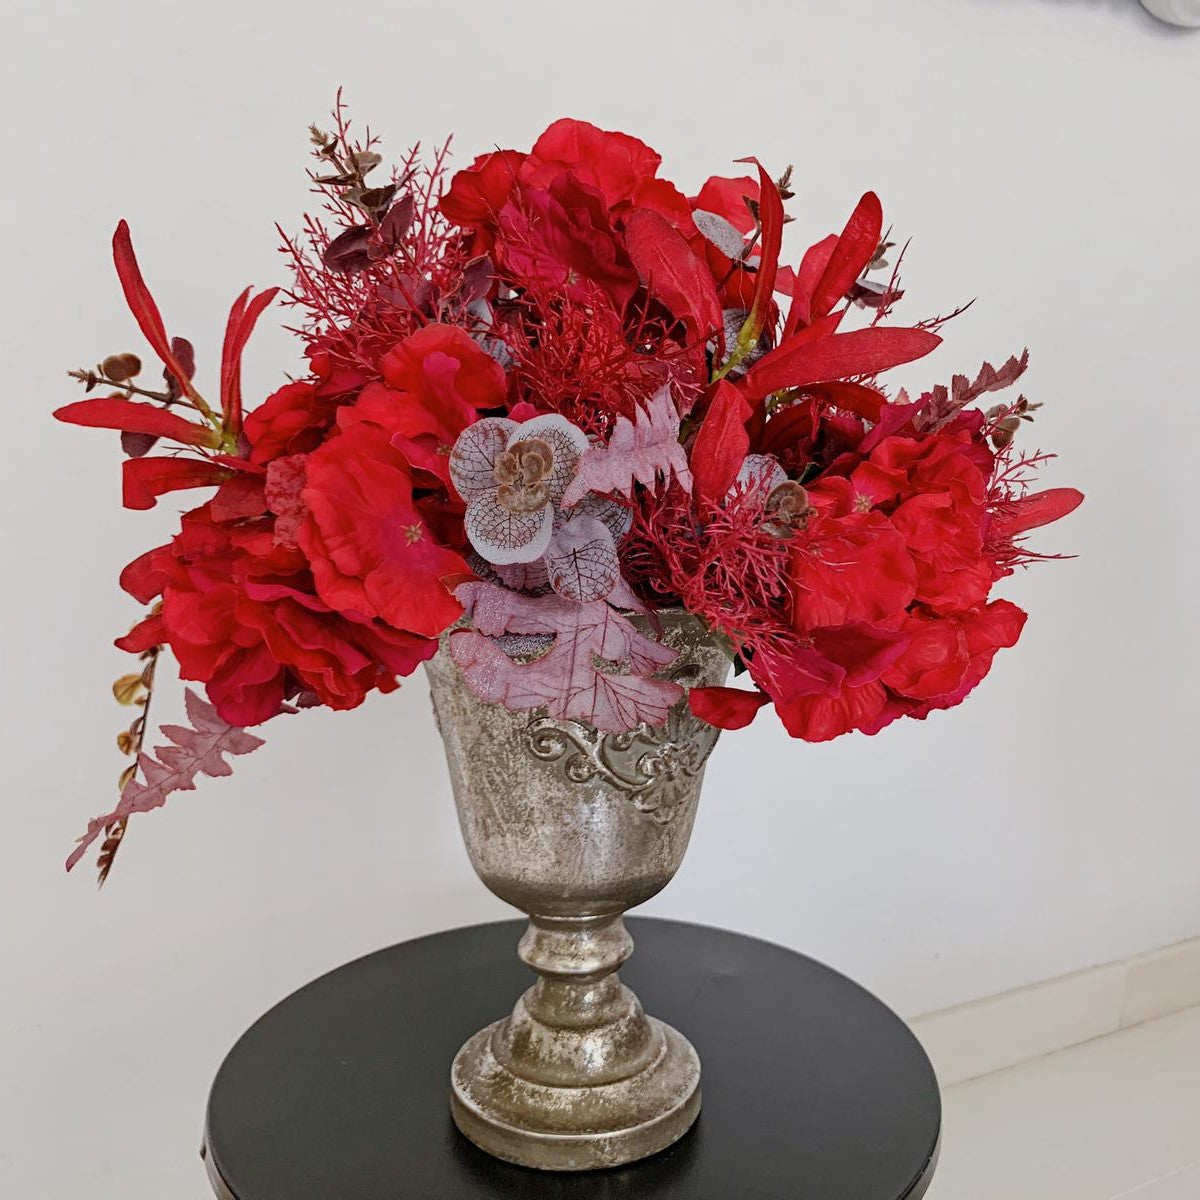 Glorious Red with Silver Rustic Vase